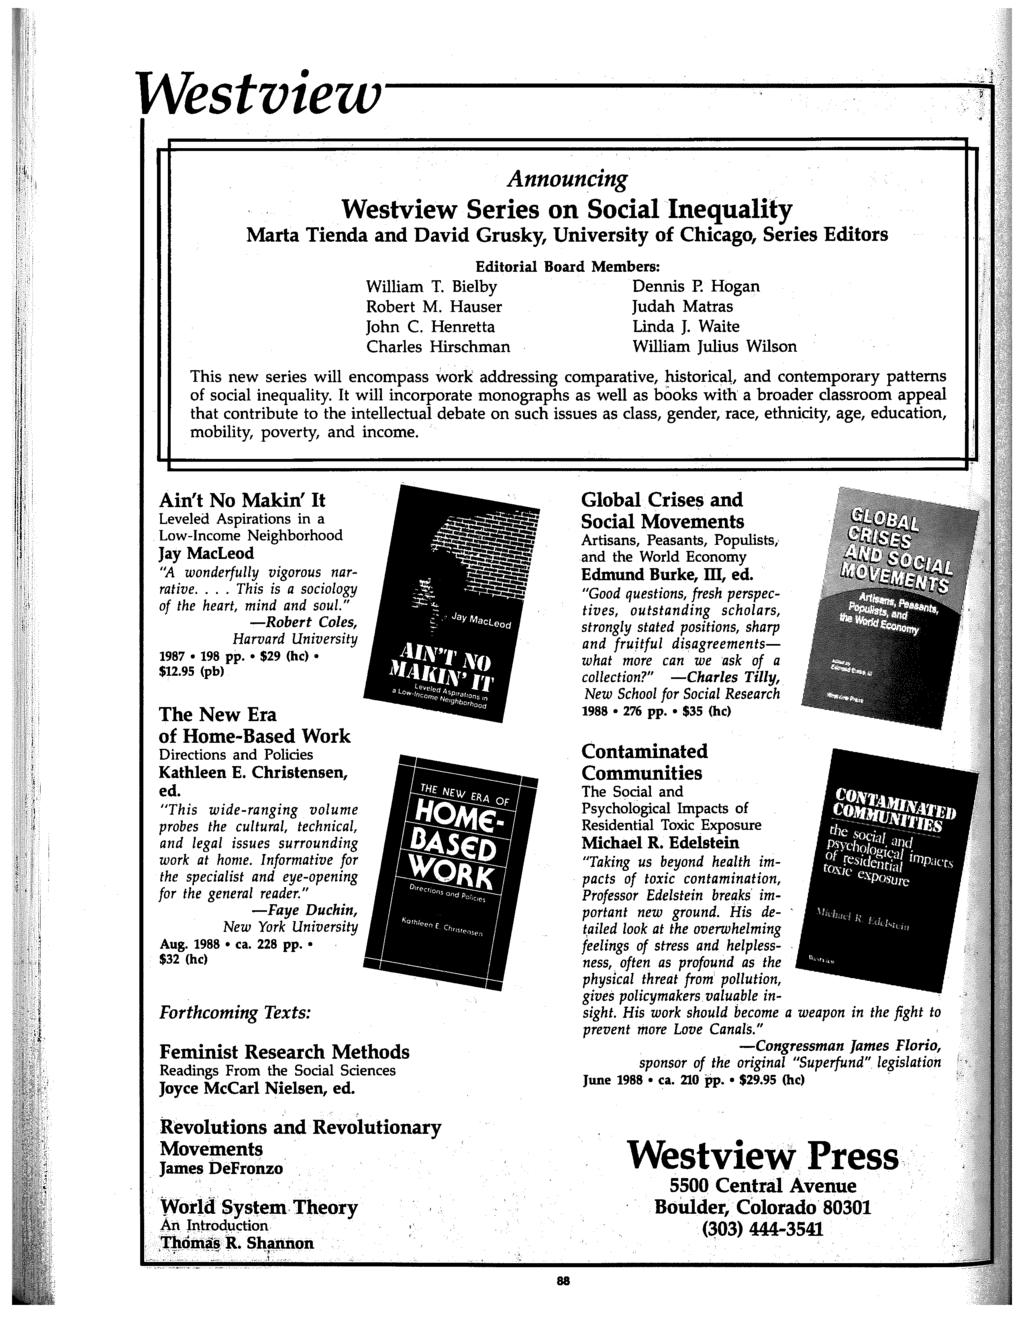 Westview--------~ Announcing Westview Series on Social Inequality Marta Tienda and David Grusky, University of Chicago, Series Editors Editorial Board Members: William T. Bielby Dennis P.